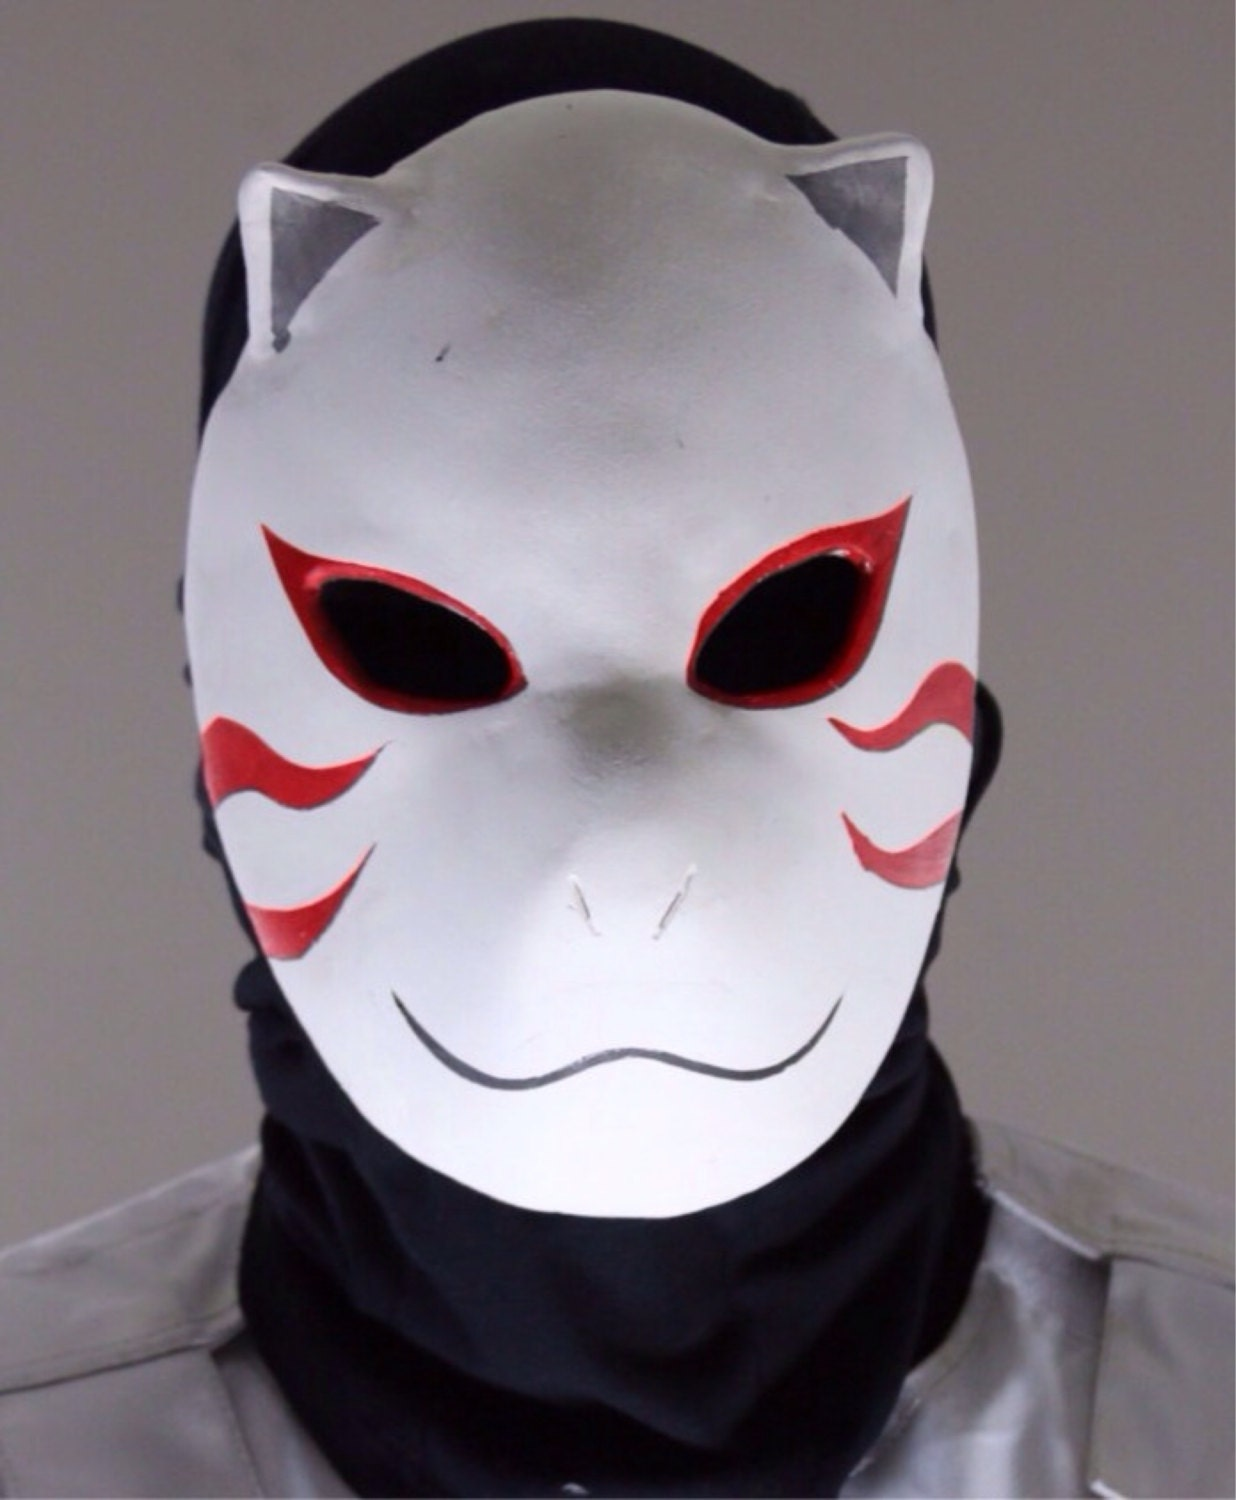 Hatake Kakashi ANBU mask by ANBUbrotherhoodSHOP on Etsy